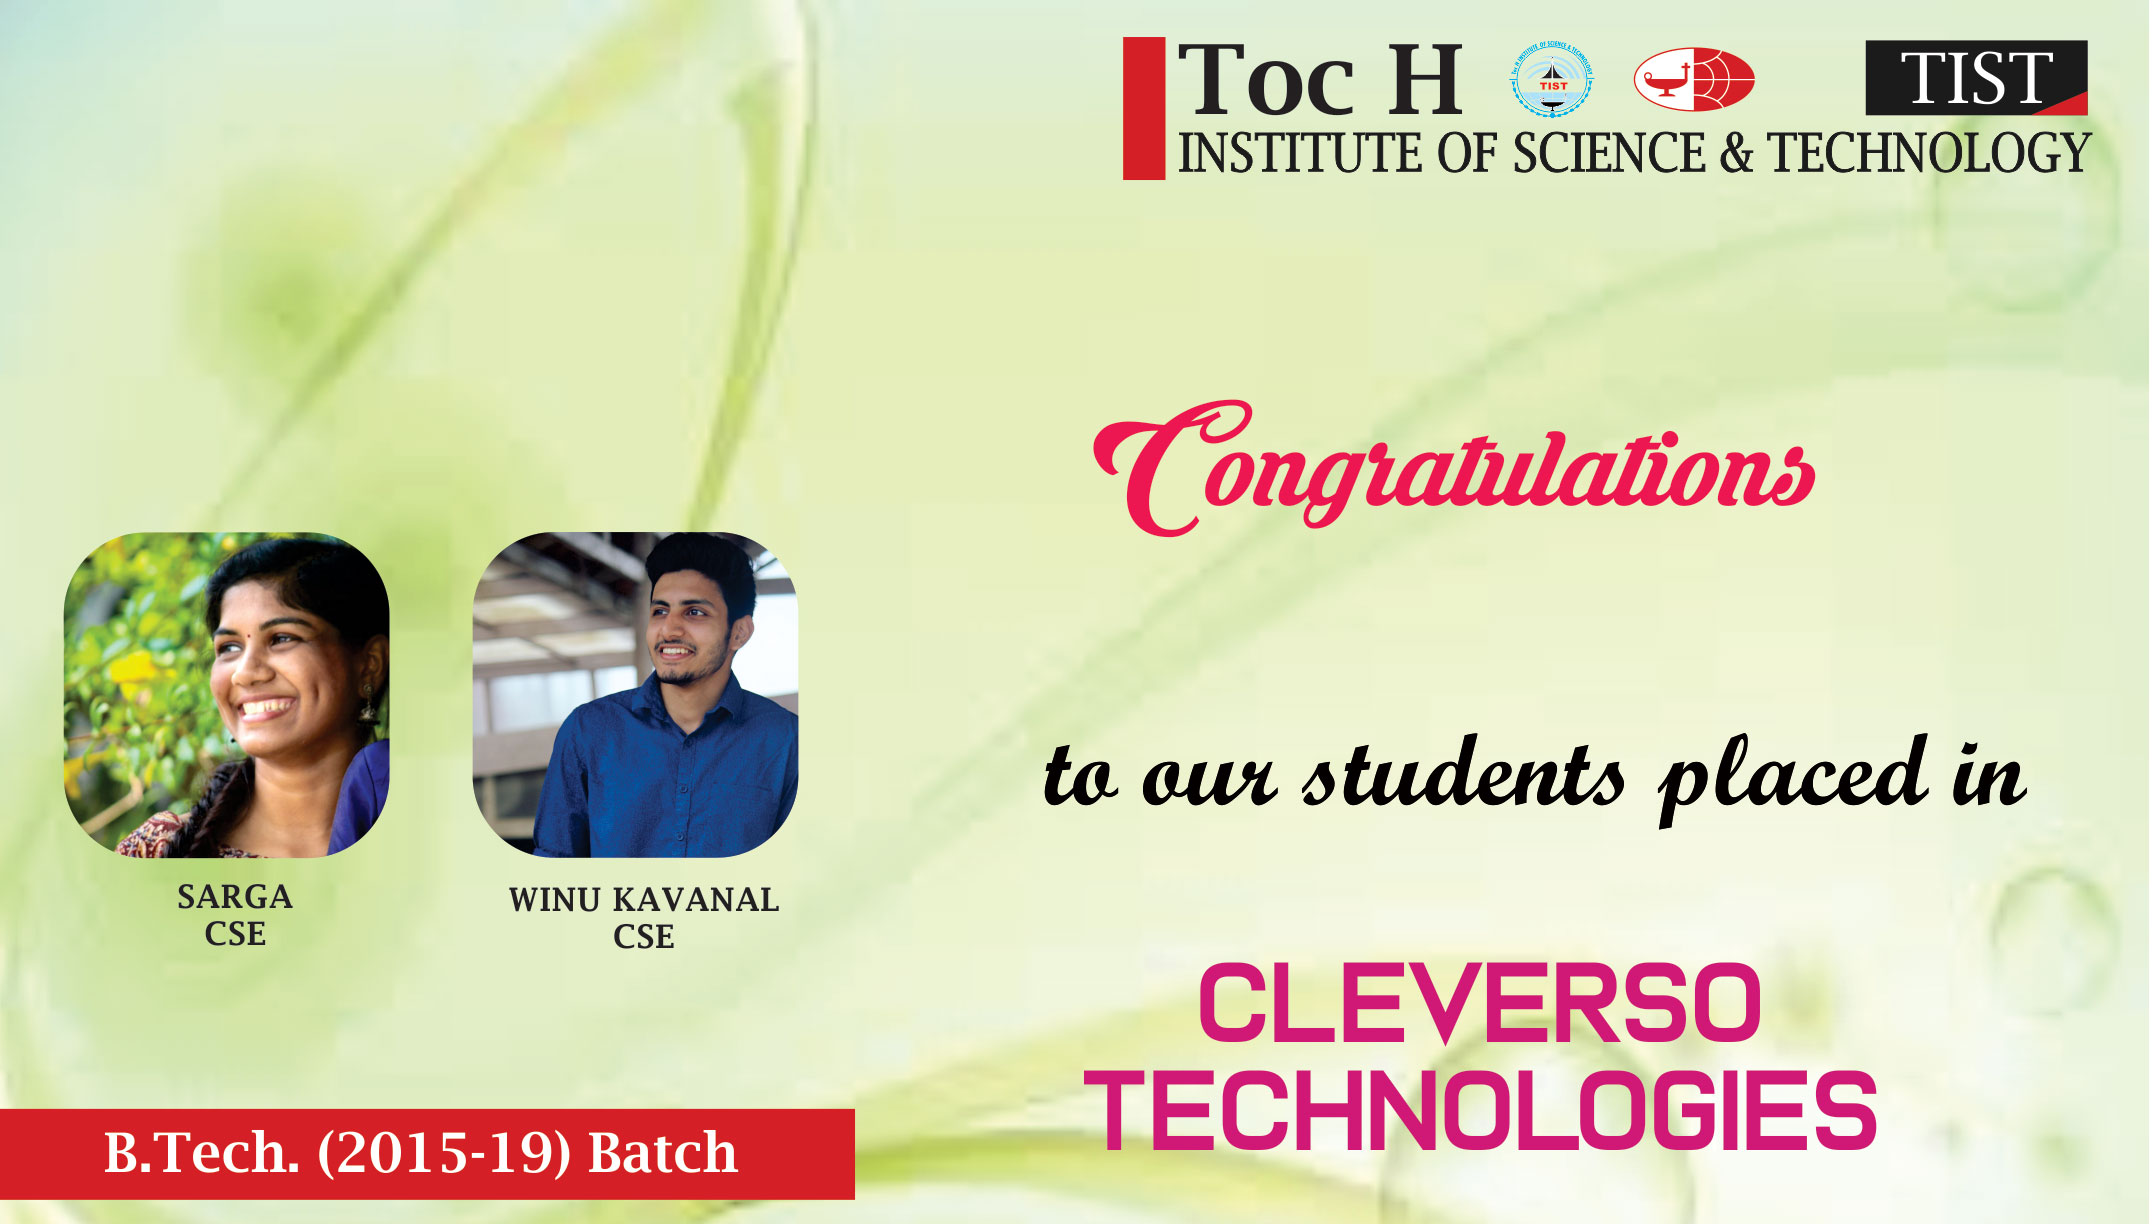 Toc H Institute of Science and Technology(NBA & NAAC Accredited) in